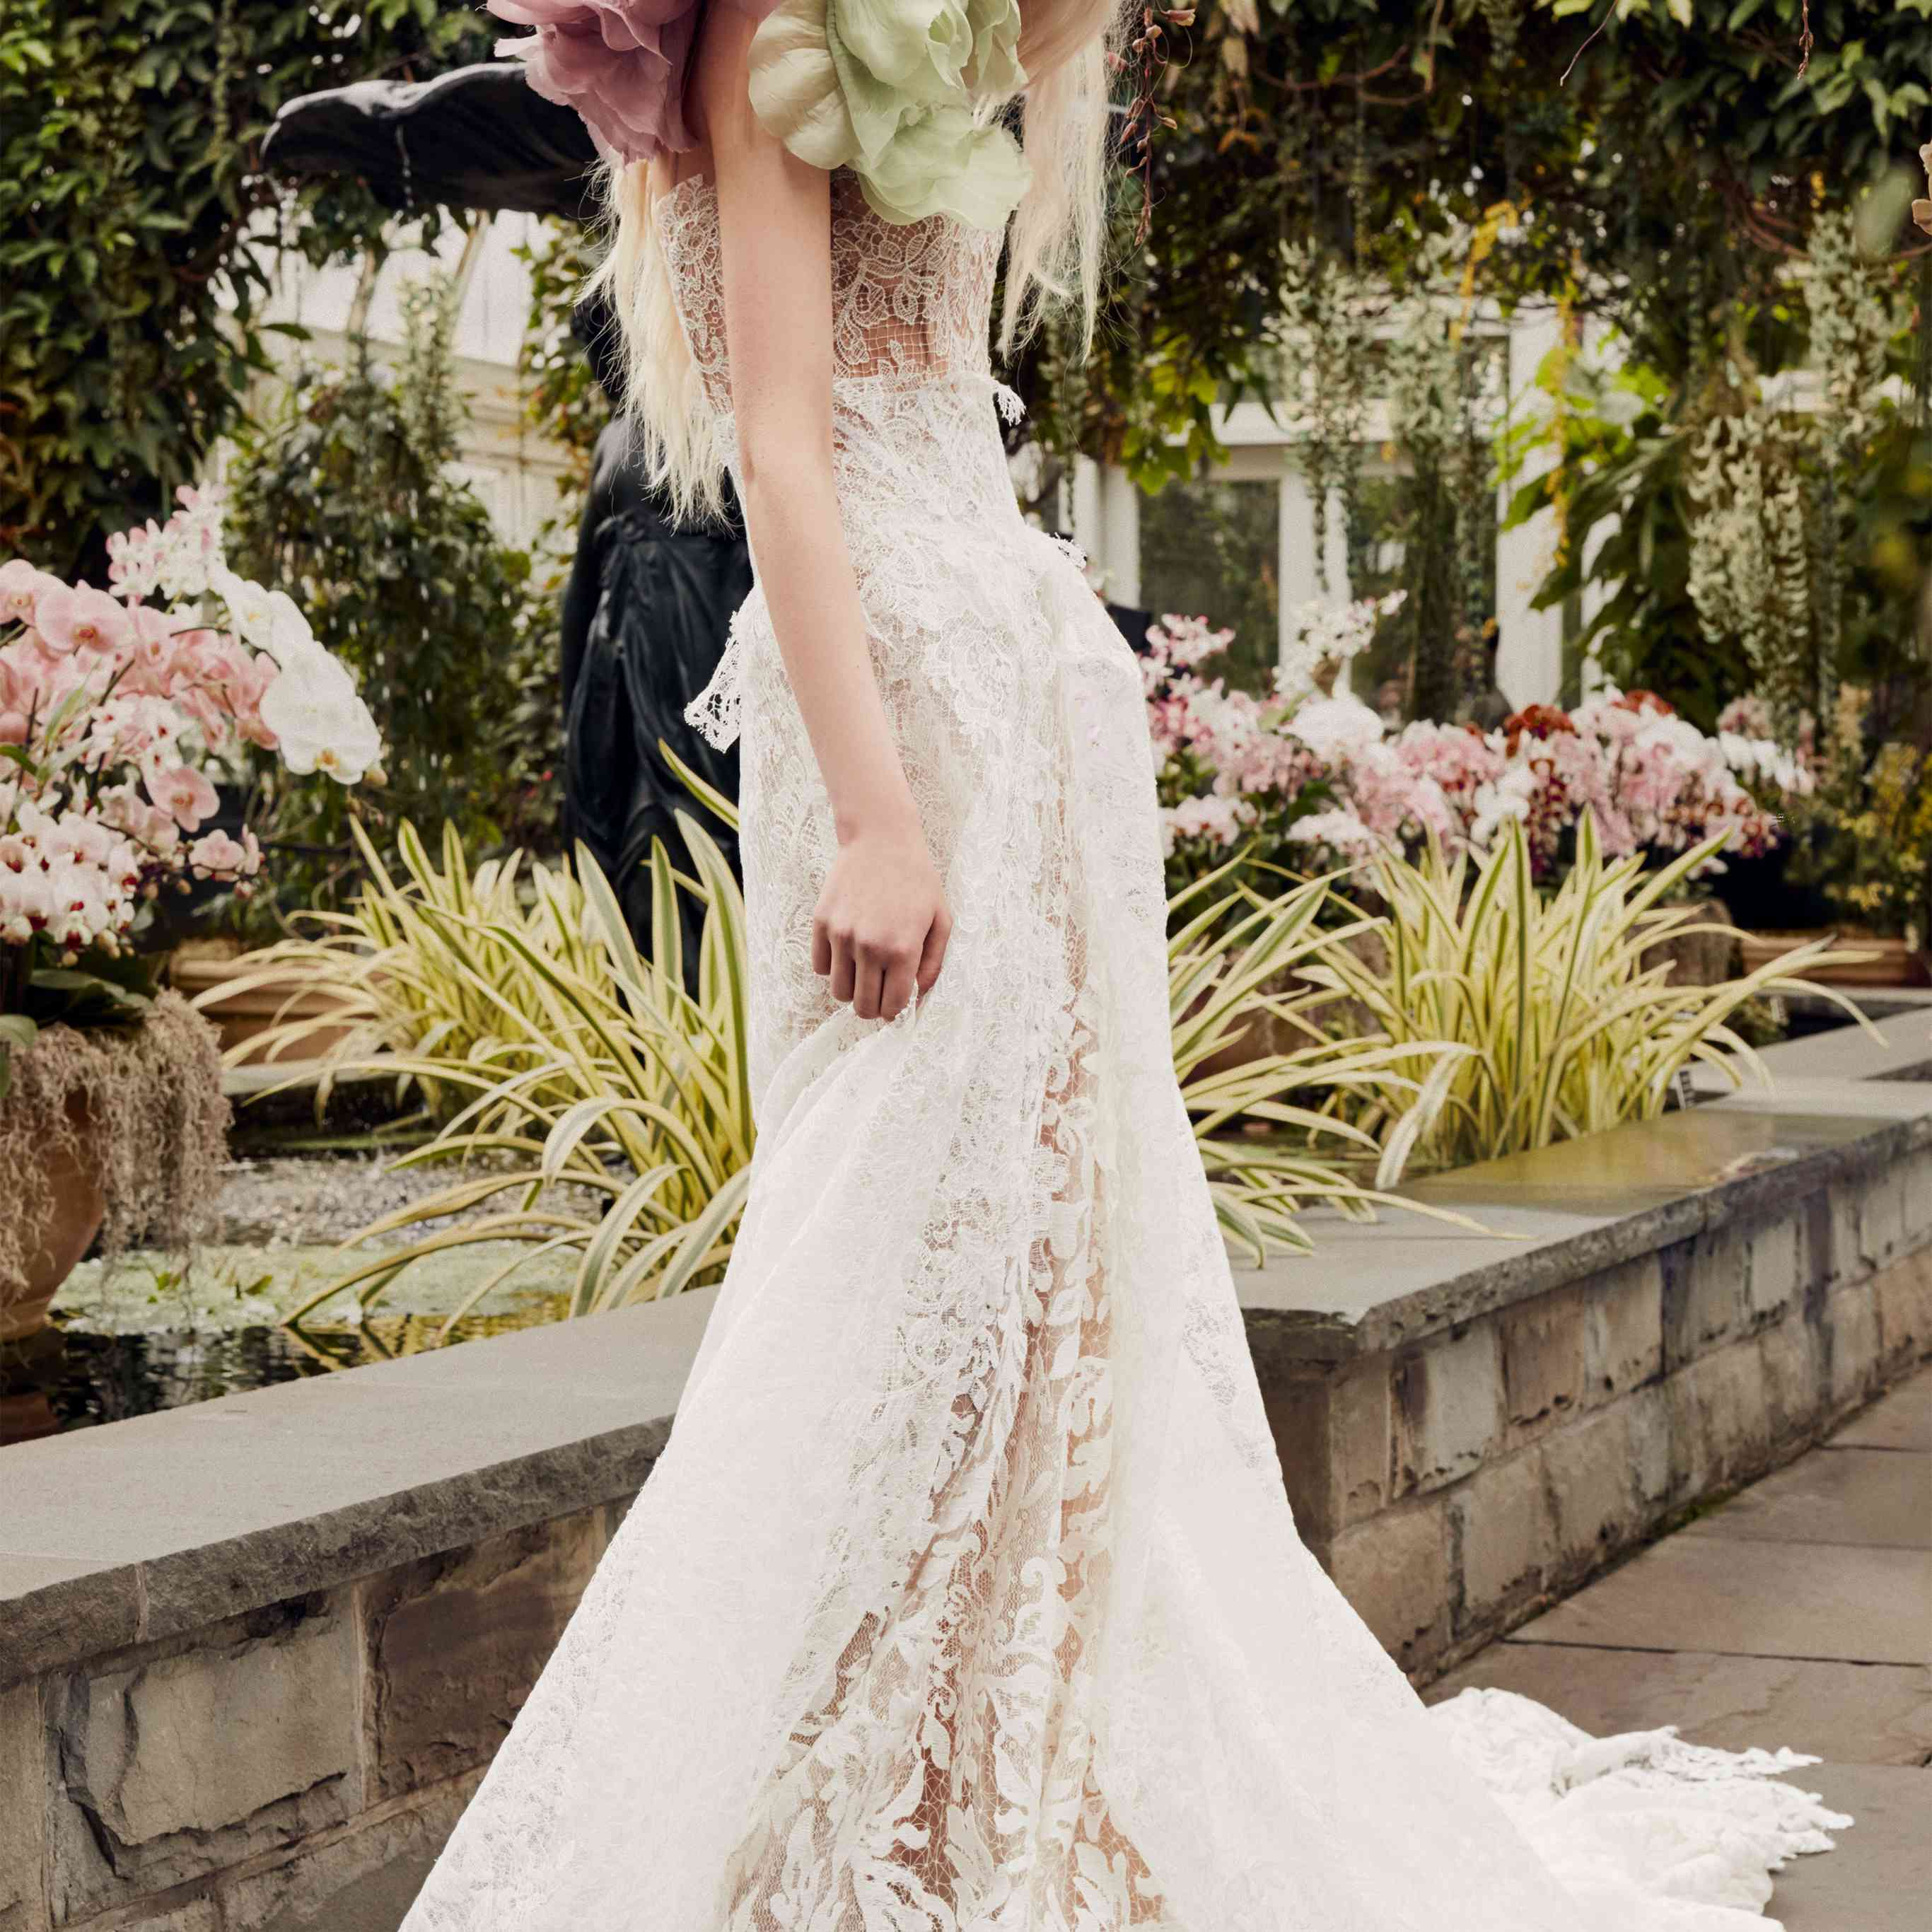 Model in allover lace gown with pink and green flower accents at the shoulder